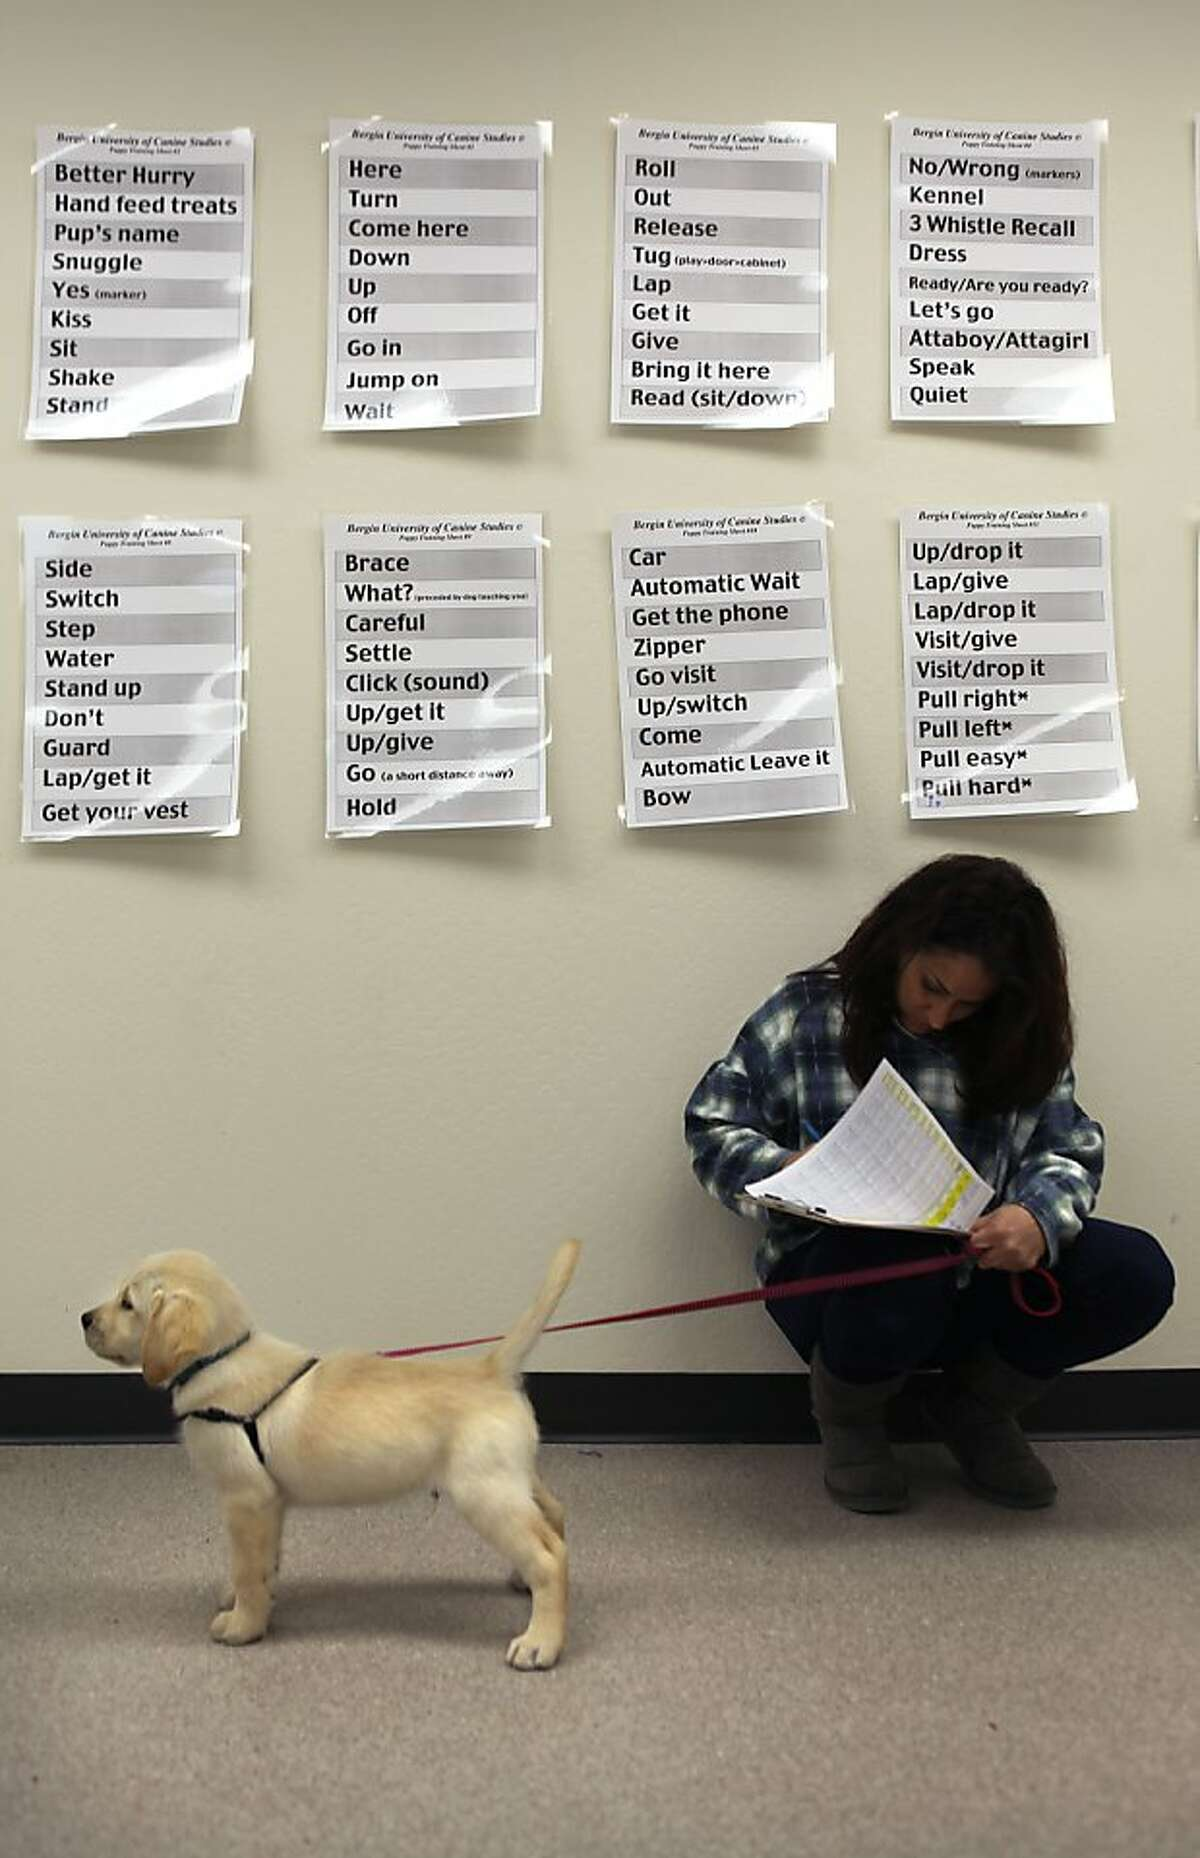 Student Jodie Miller from Washington filling out a log of the training completed on a puppy at Bergin University of Canine Studies in Rohnert Park, Calif., on Monday, September 17, 2012.